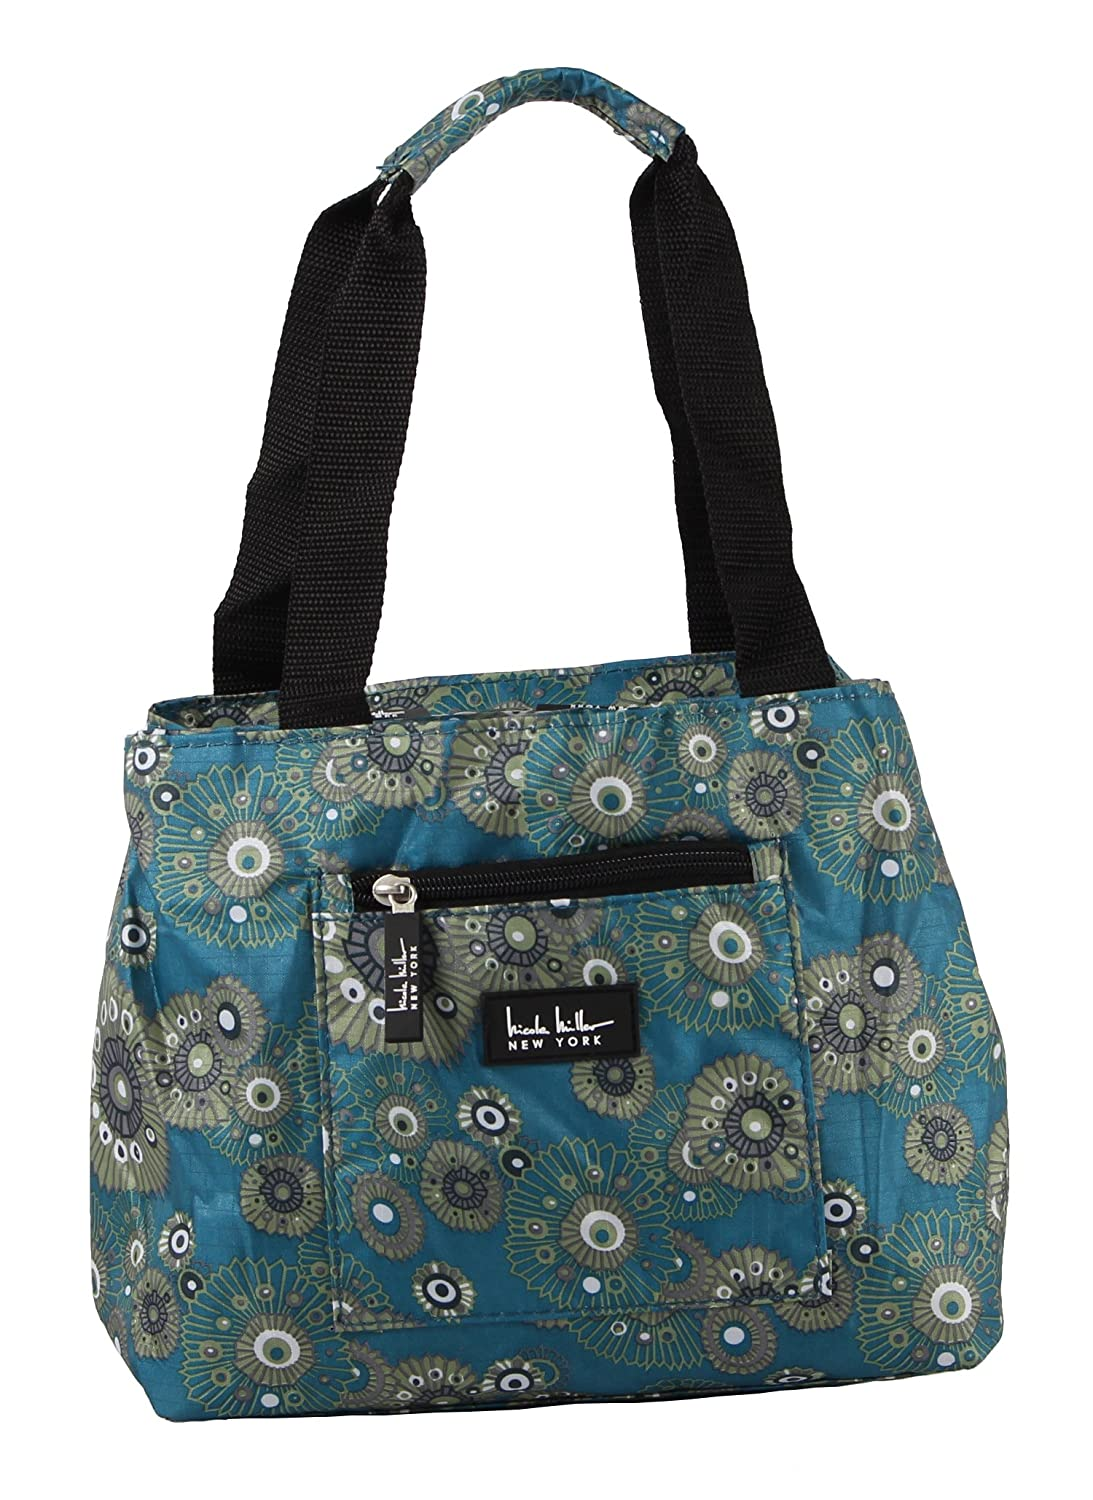 Nicole Miller Insulated 11 Lunch Tote Blue Fushion